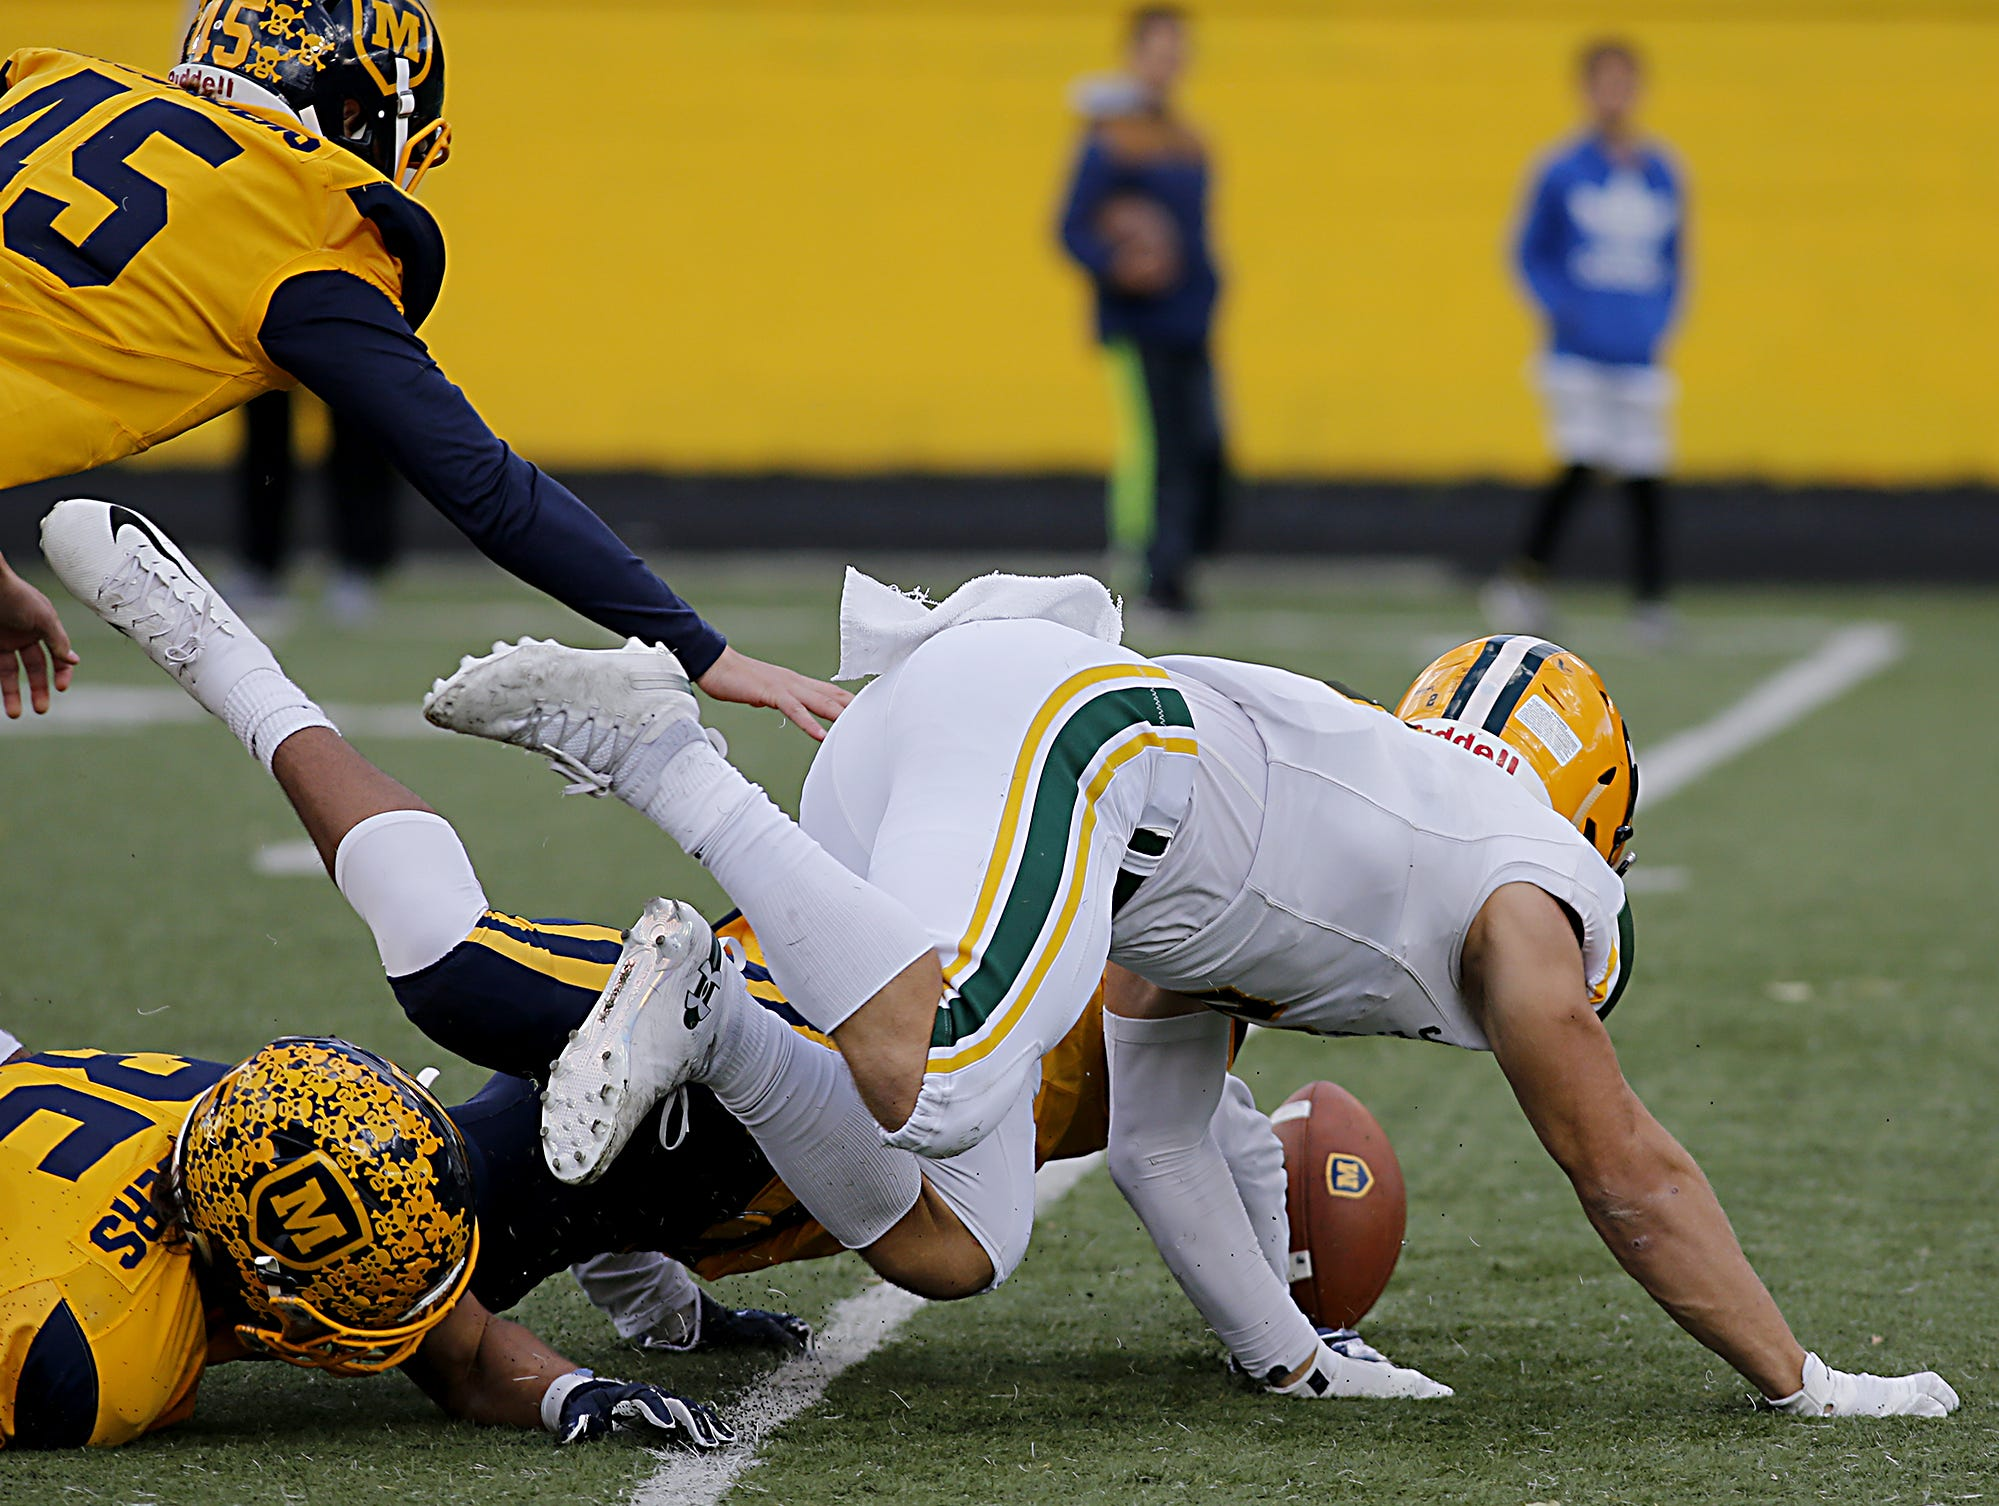 Lakewood St. Edward looses the ball and Moeller recovers during their game at Lockland Saturday, Oct. 20, 2018.